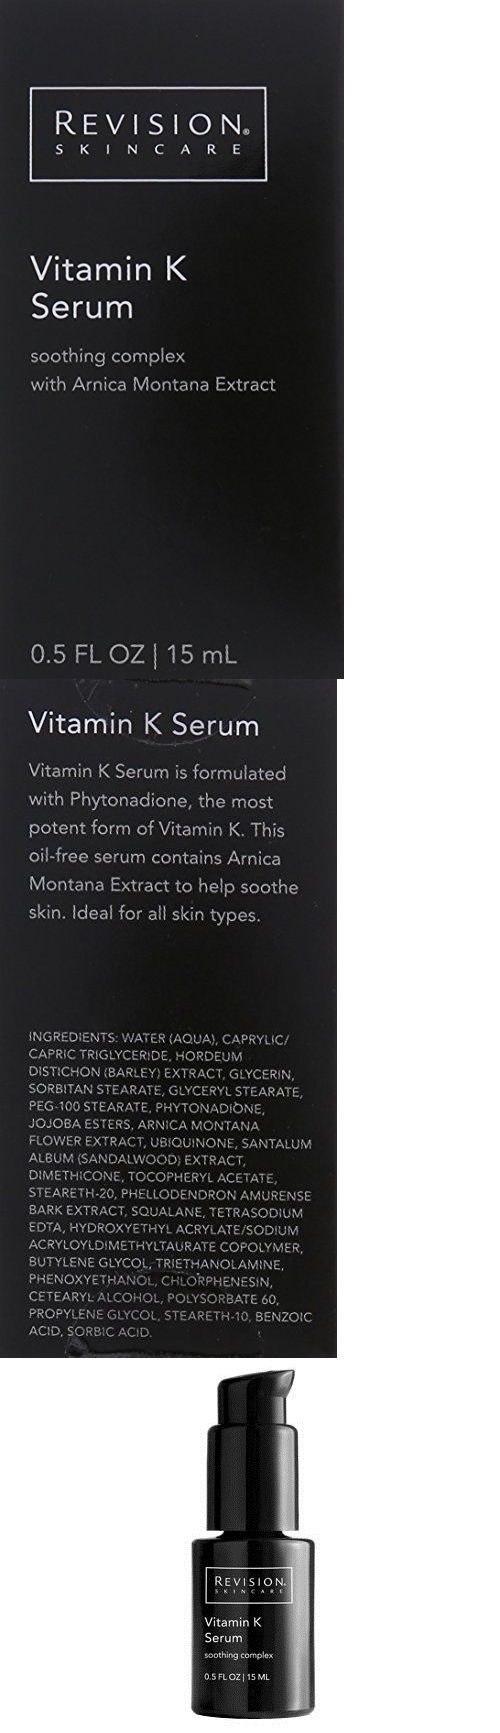 Anti-Aging Products: Revision Skincare Vitamin K Serum - 0.5 Oz 15 Ml (New In Box) -> BUY IT NOW ONLY: $32.19 on eBay!